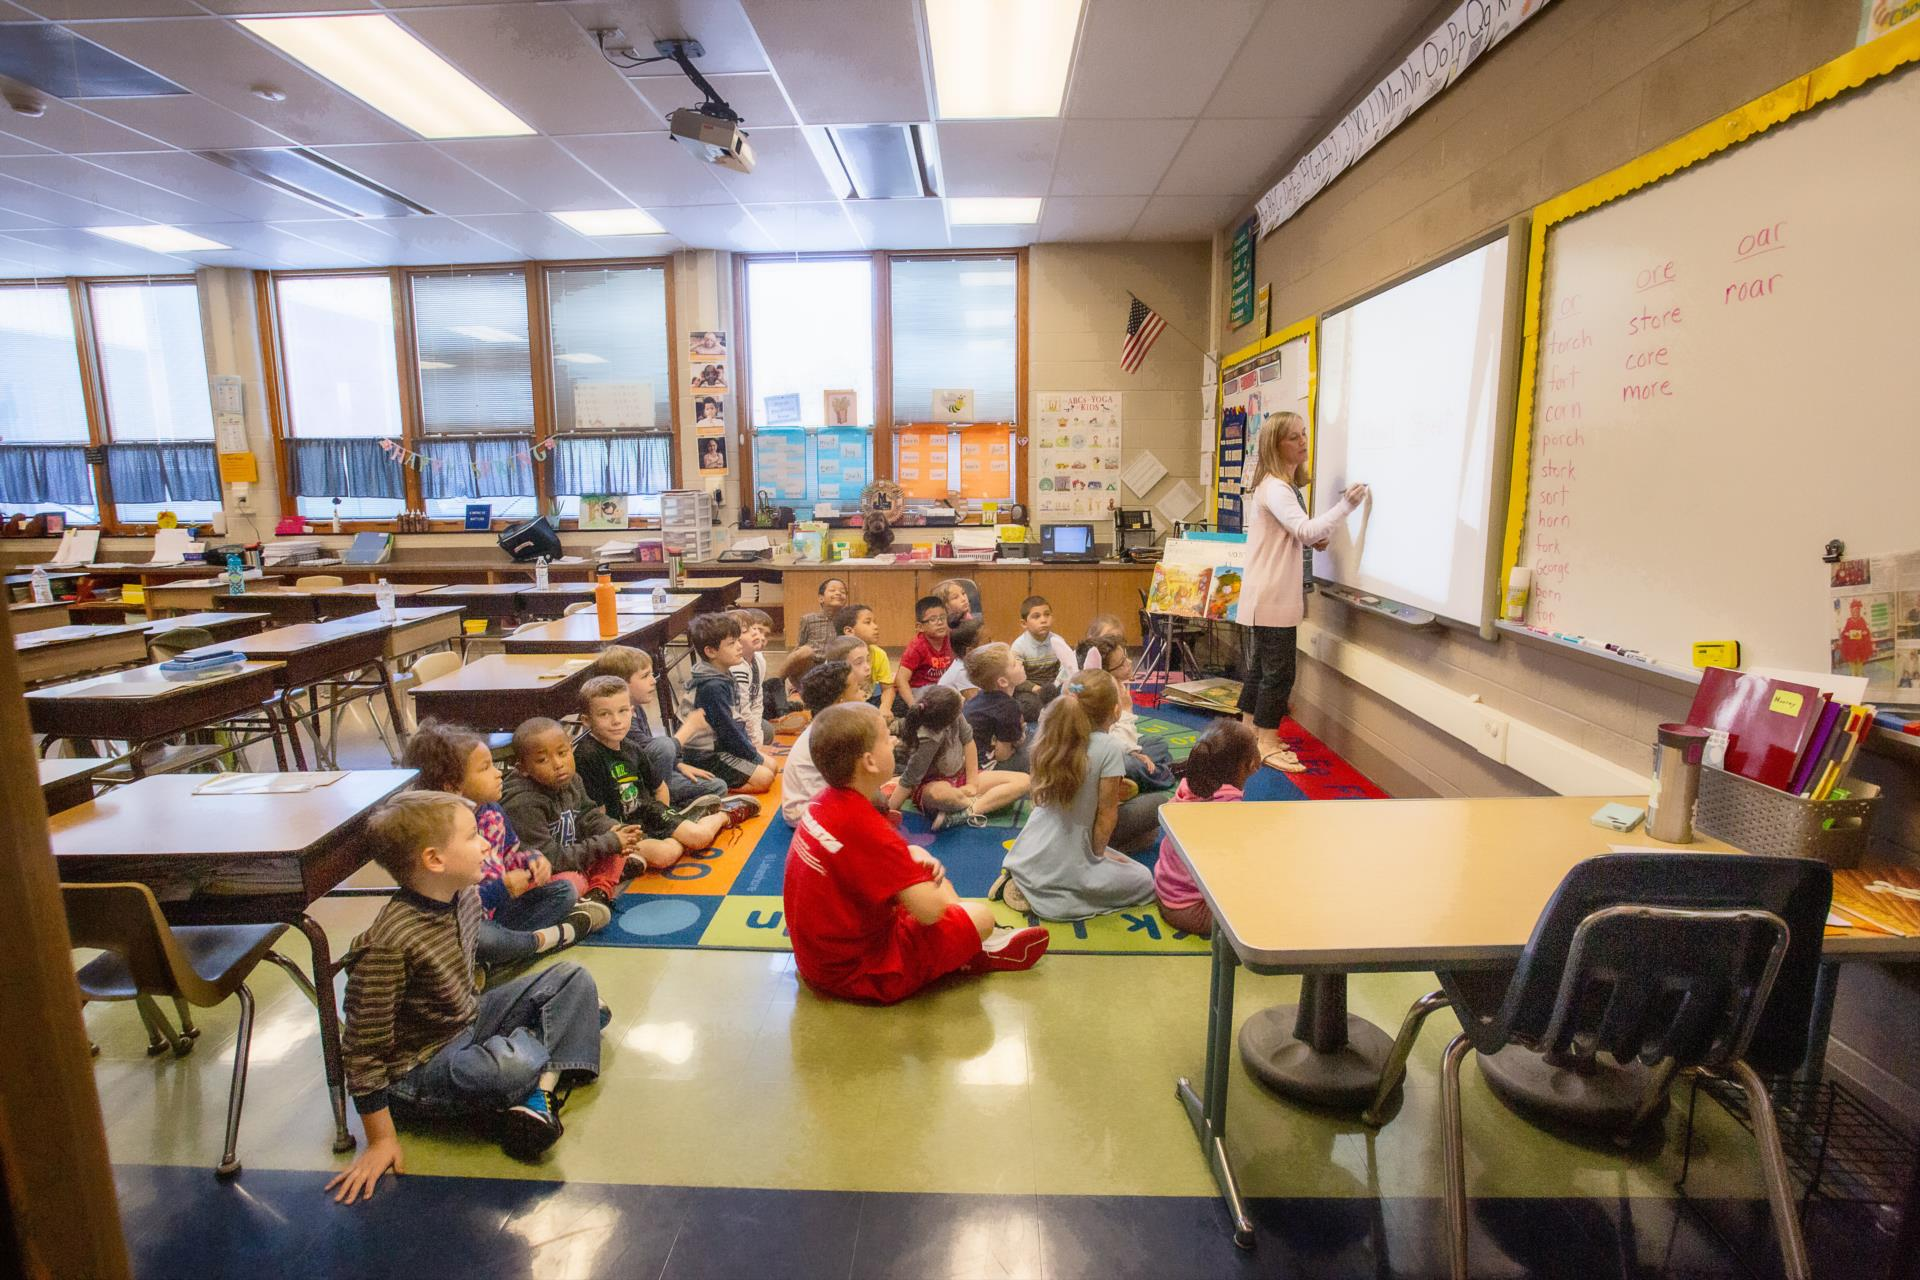 Classroom at Lincoln Elementary School with students and teacher